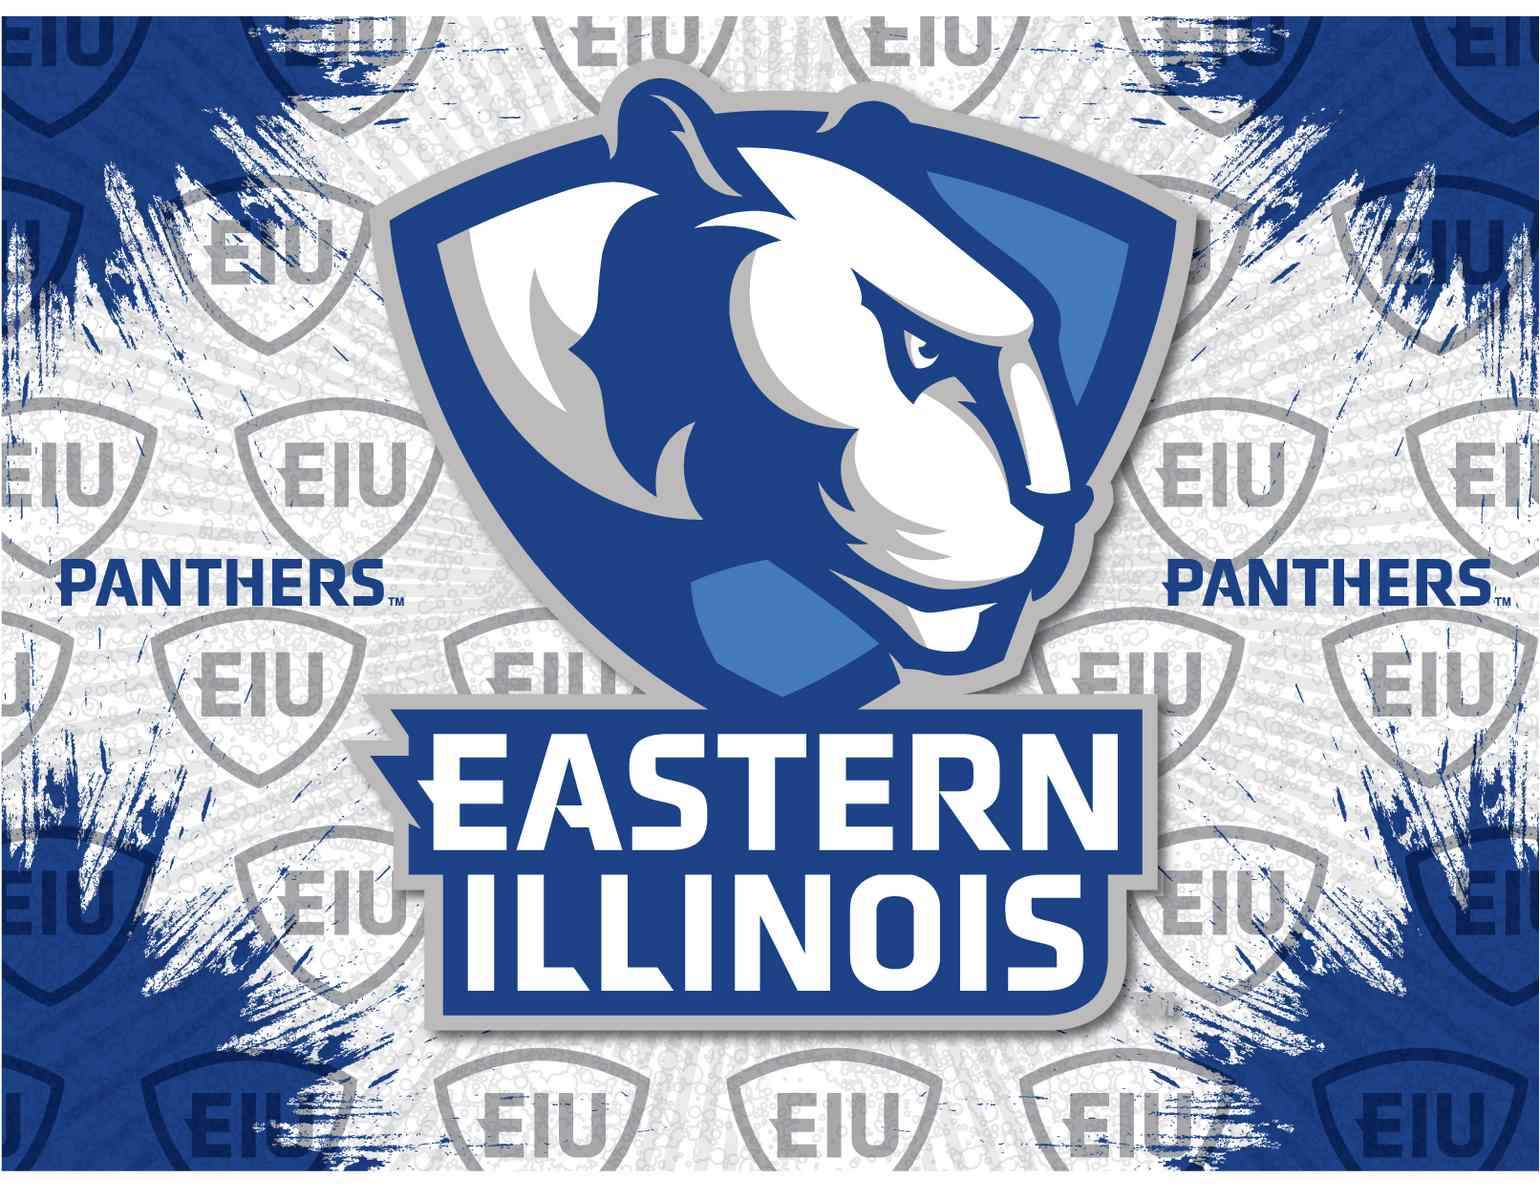 Eastern Illinois University Canvas.